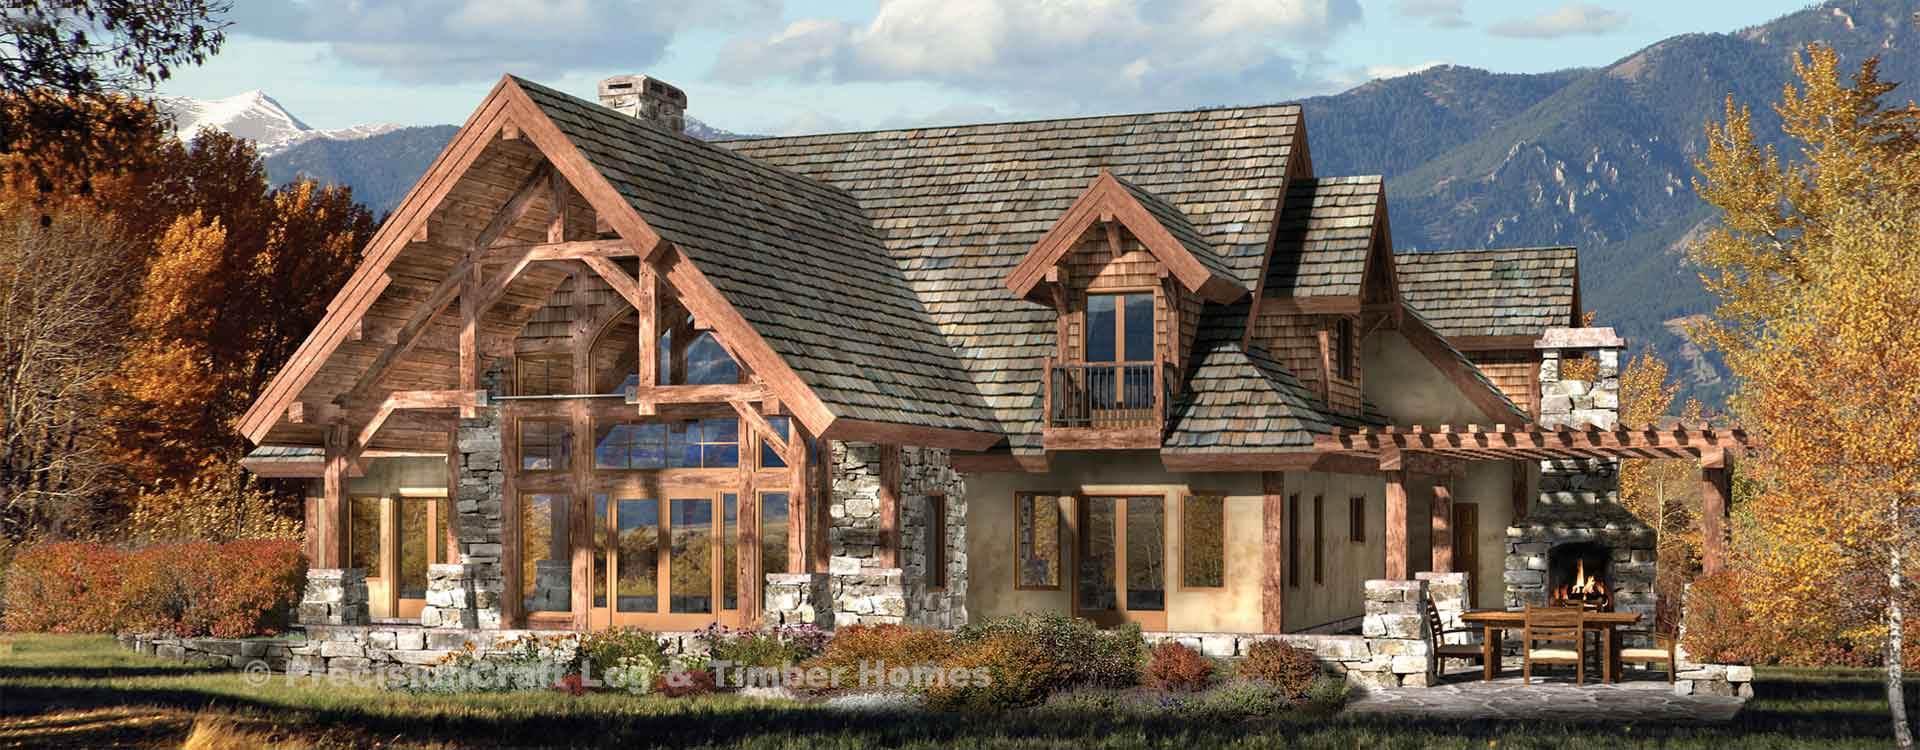 Timber Frame And Log Home Floor Plans By PrecisionCraft - Timber frame homes plans